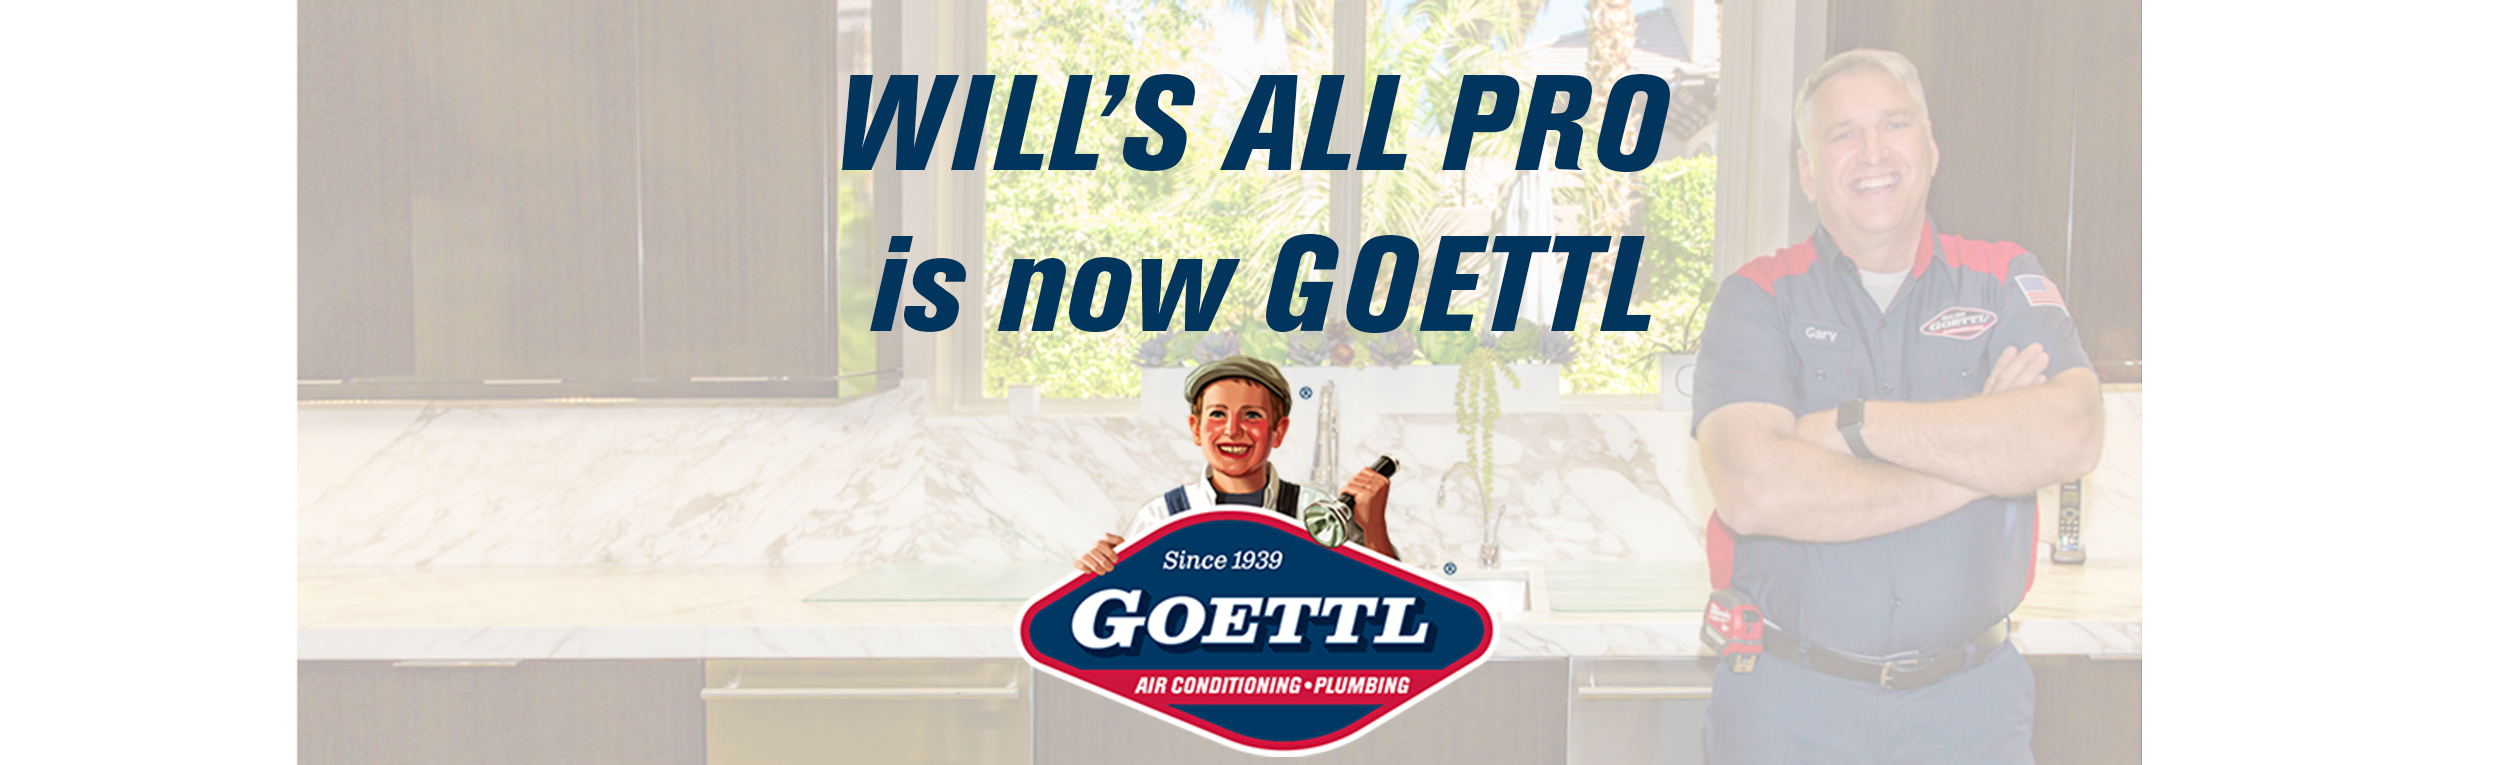 wills all pro is now goettl